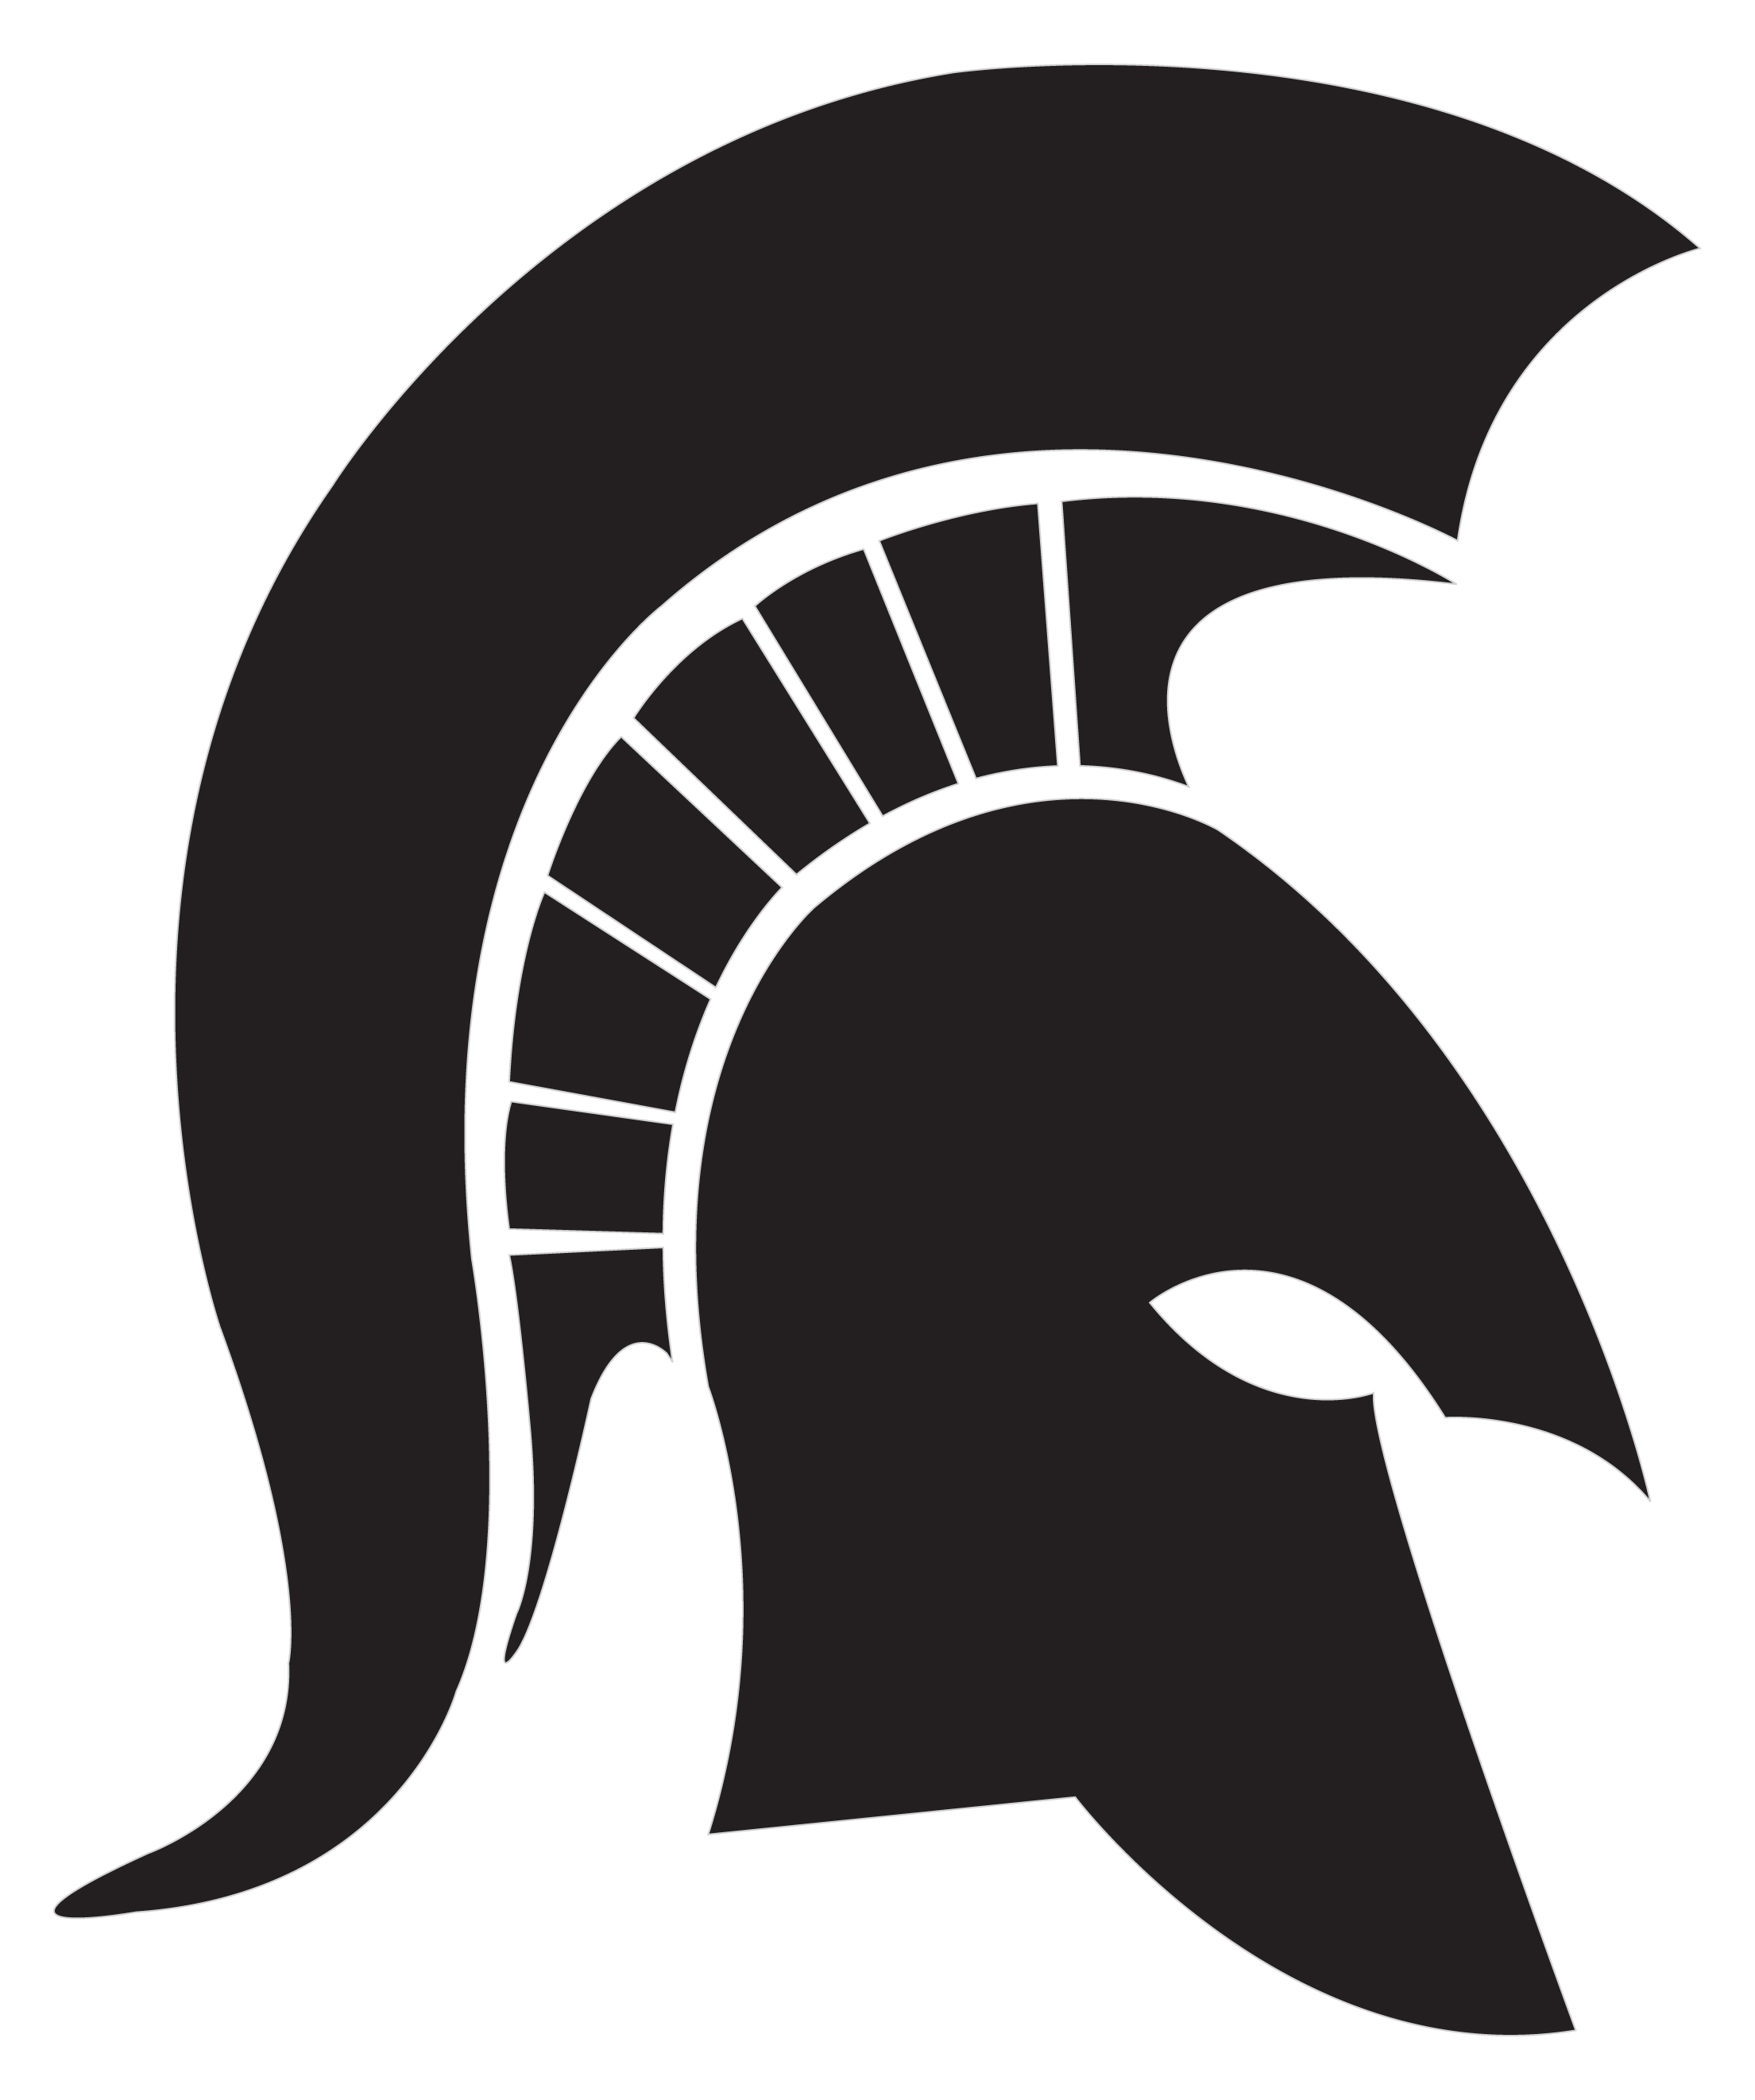 17 Spartan Helmet Free Cliparts That You-17 Spartan Helmet Free Cliparts That You Can Download To You Computer-0